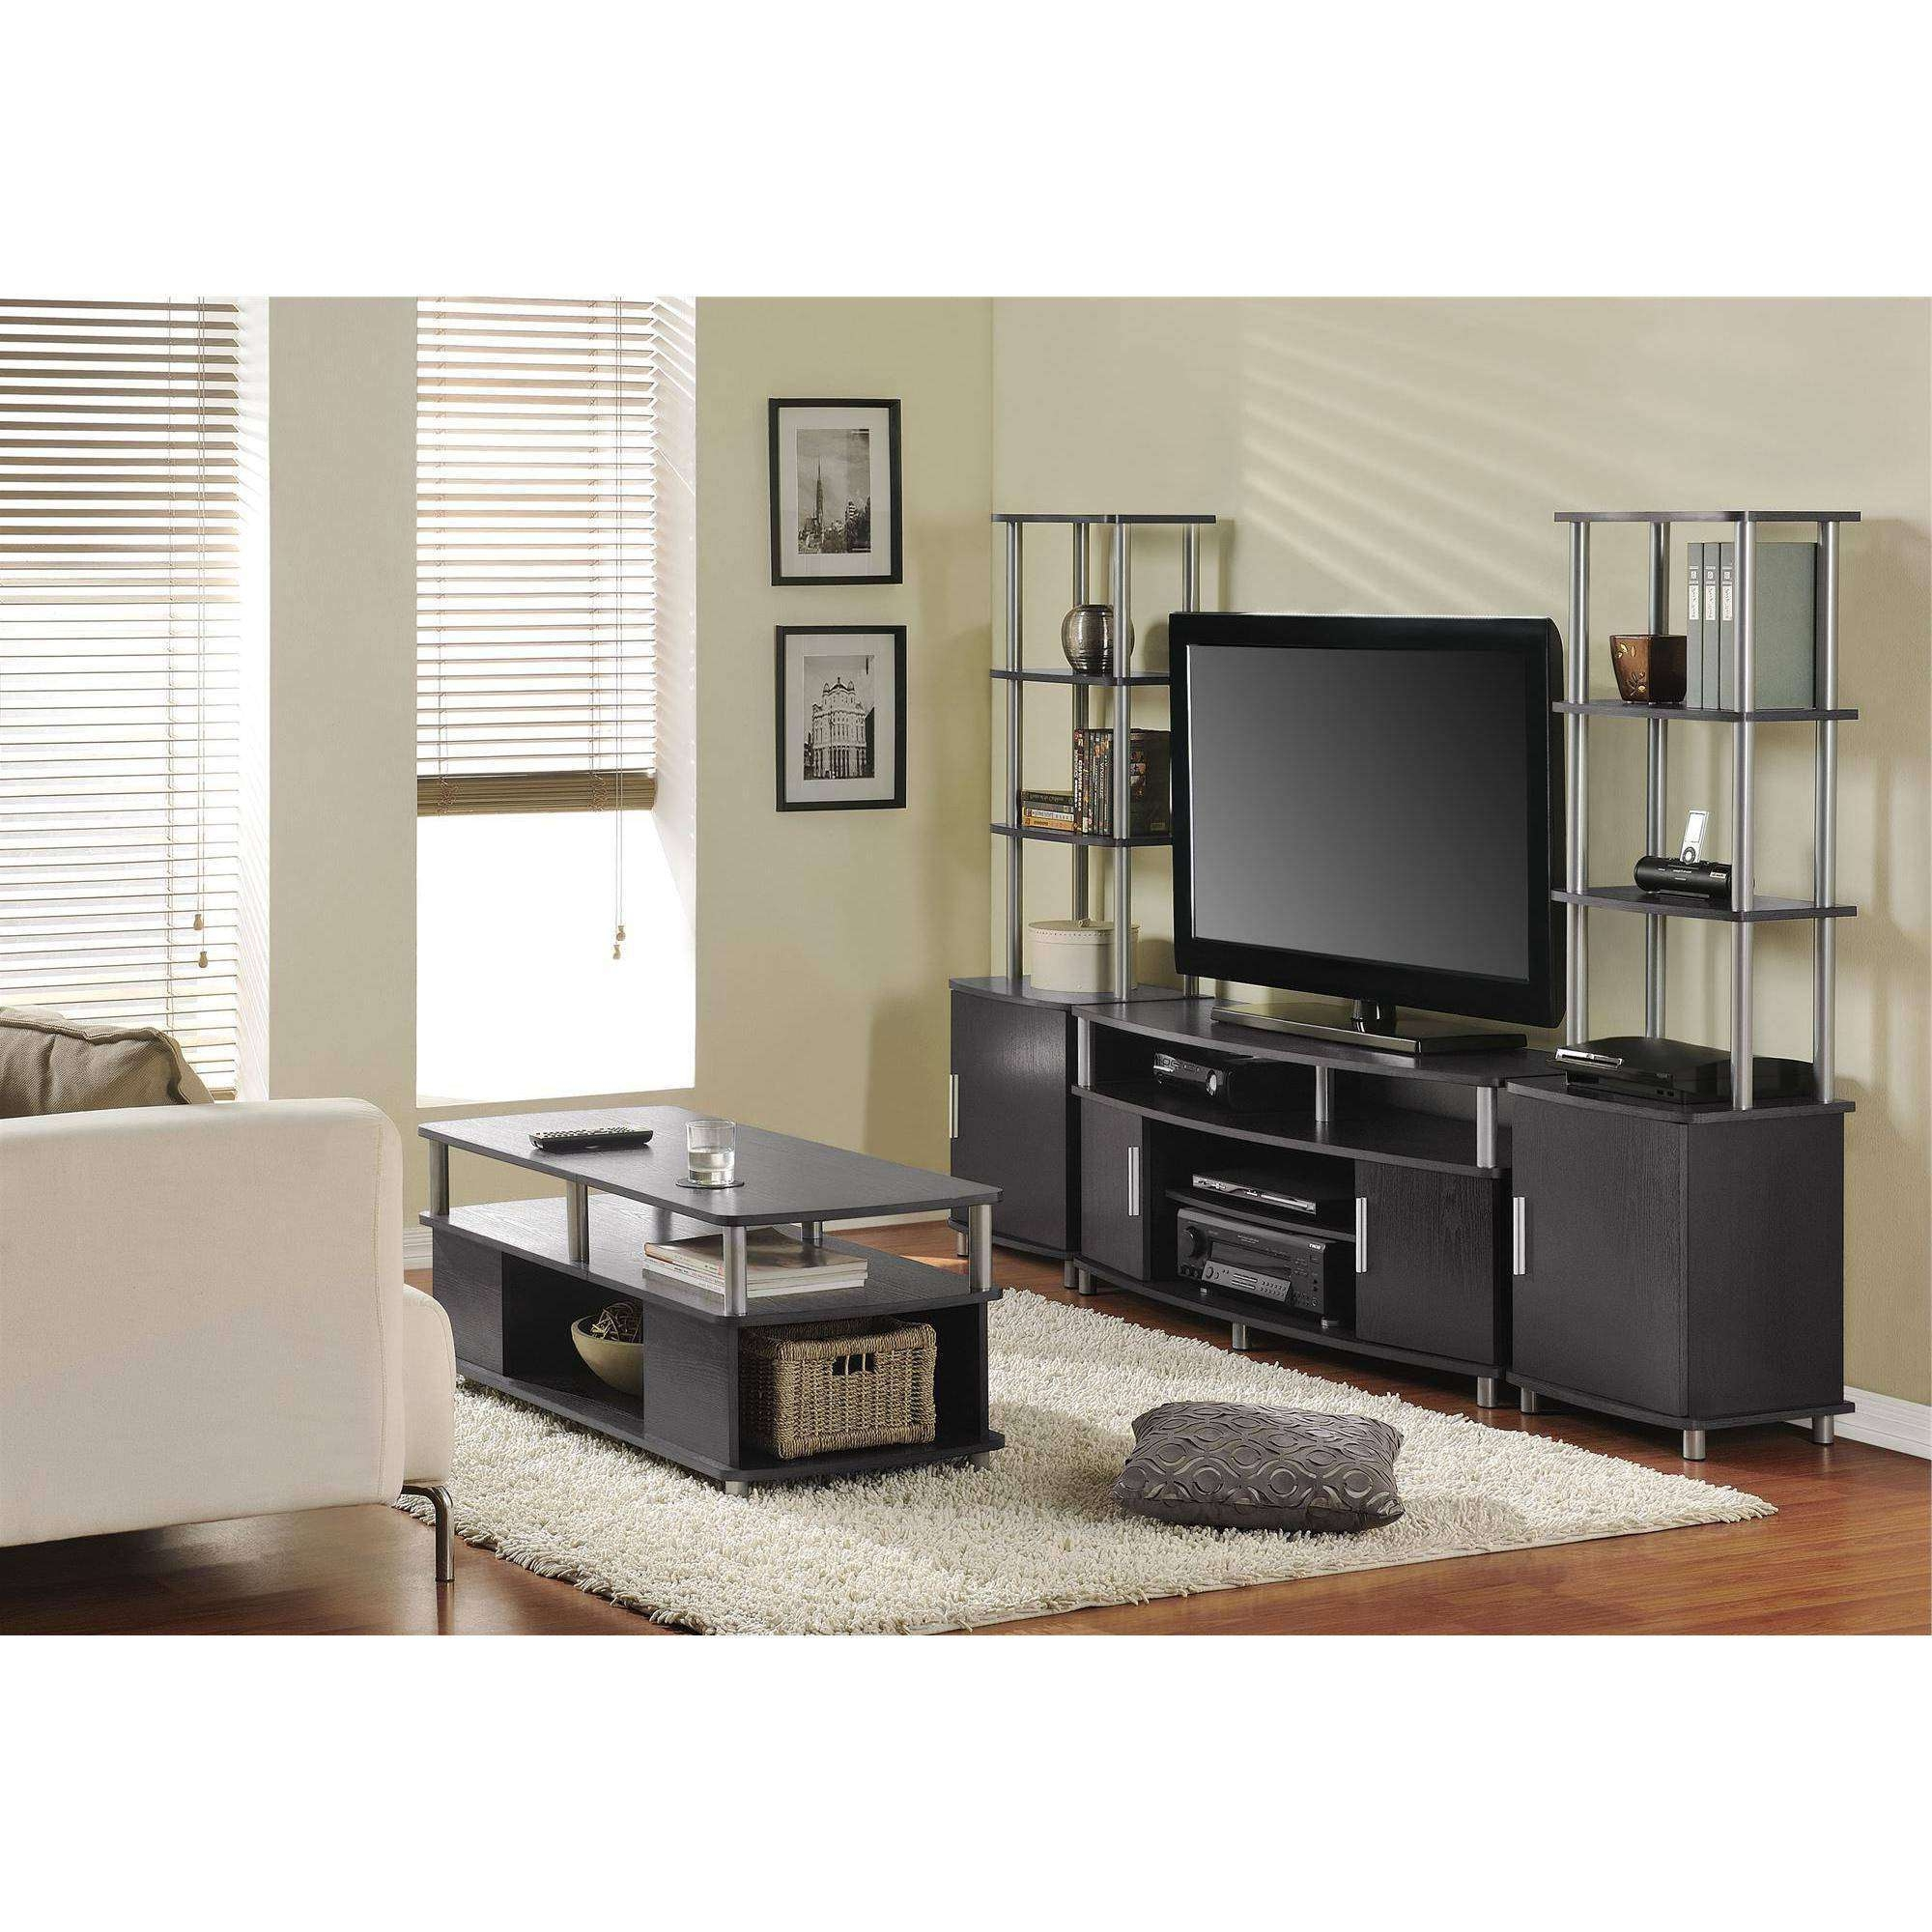 Coffee Table : Marvelous Coffee And End Table Sets Black Coffee Within Tv Cabinets And Coffee Table Sets (View 14 of 20)